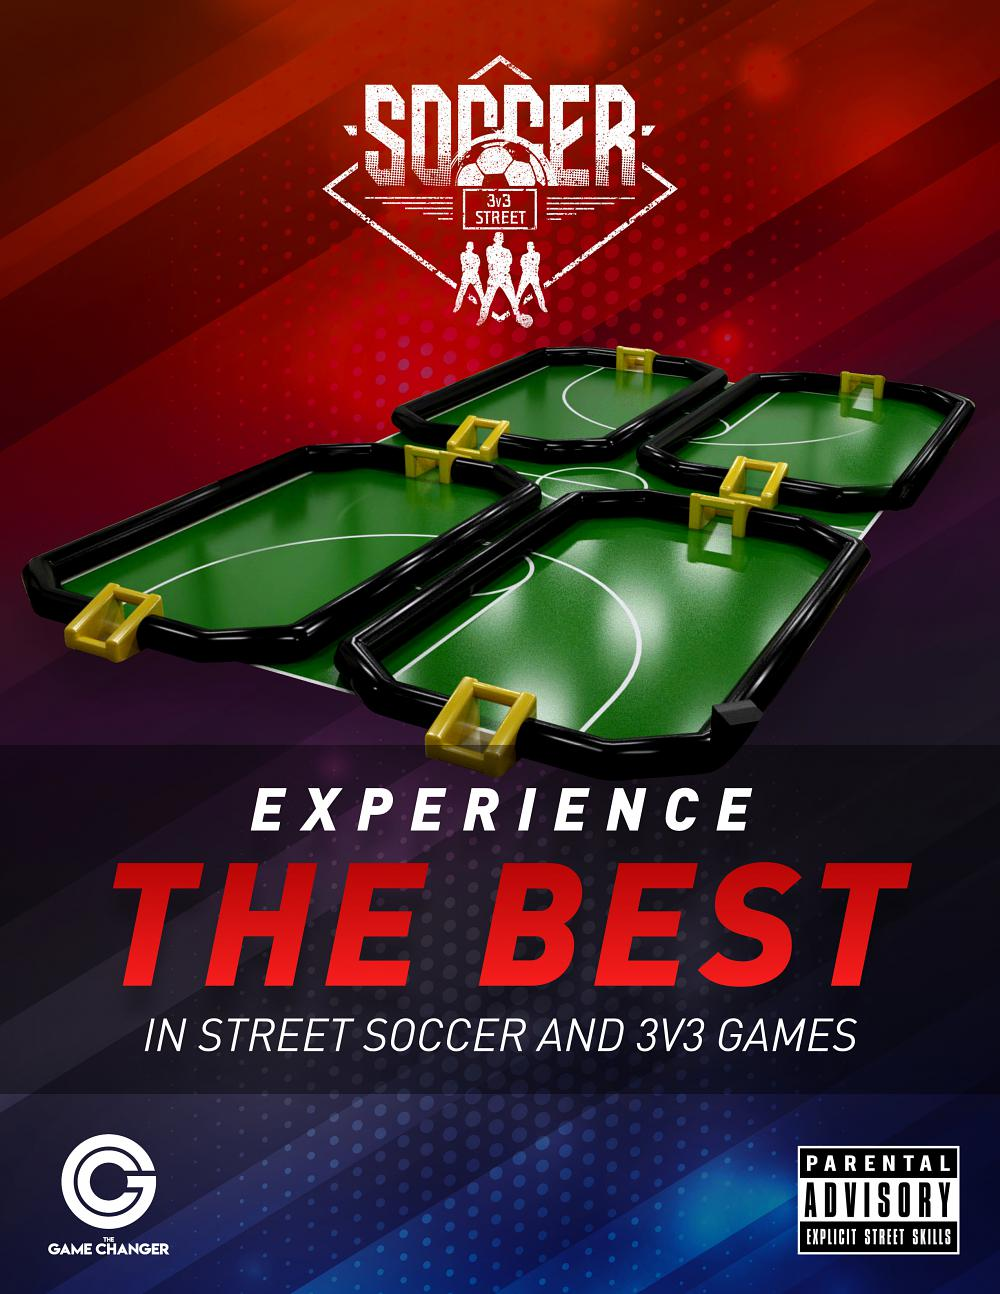 Street Soccer PLAY Session (Session 6)